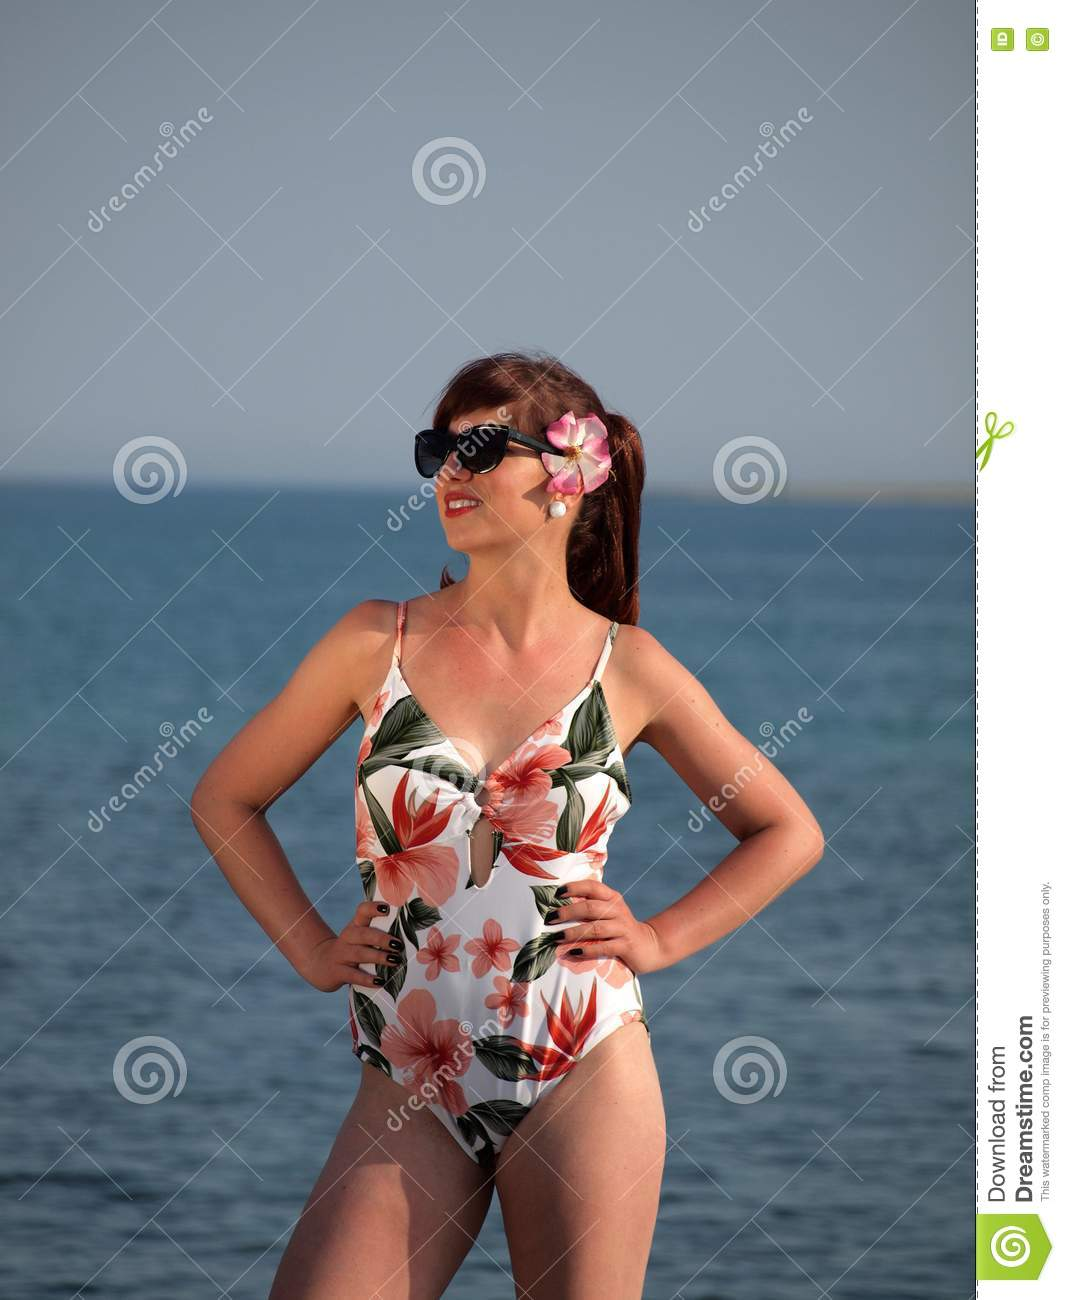 Retro Girl At The Beach Stock Image. Image Of Play